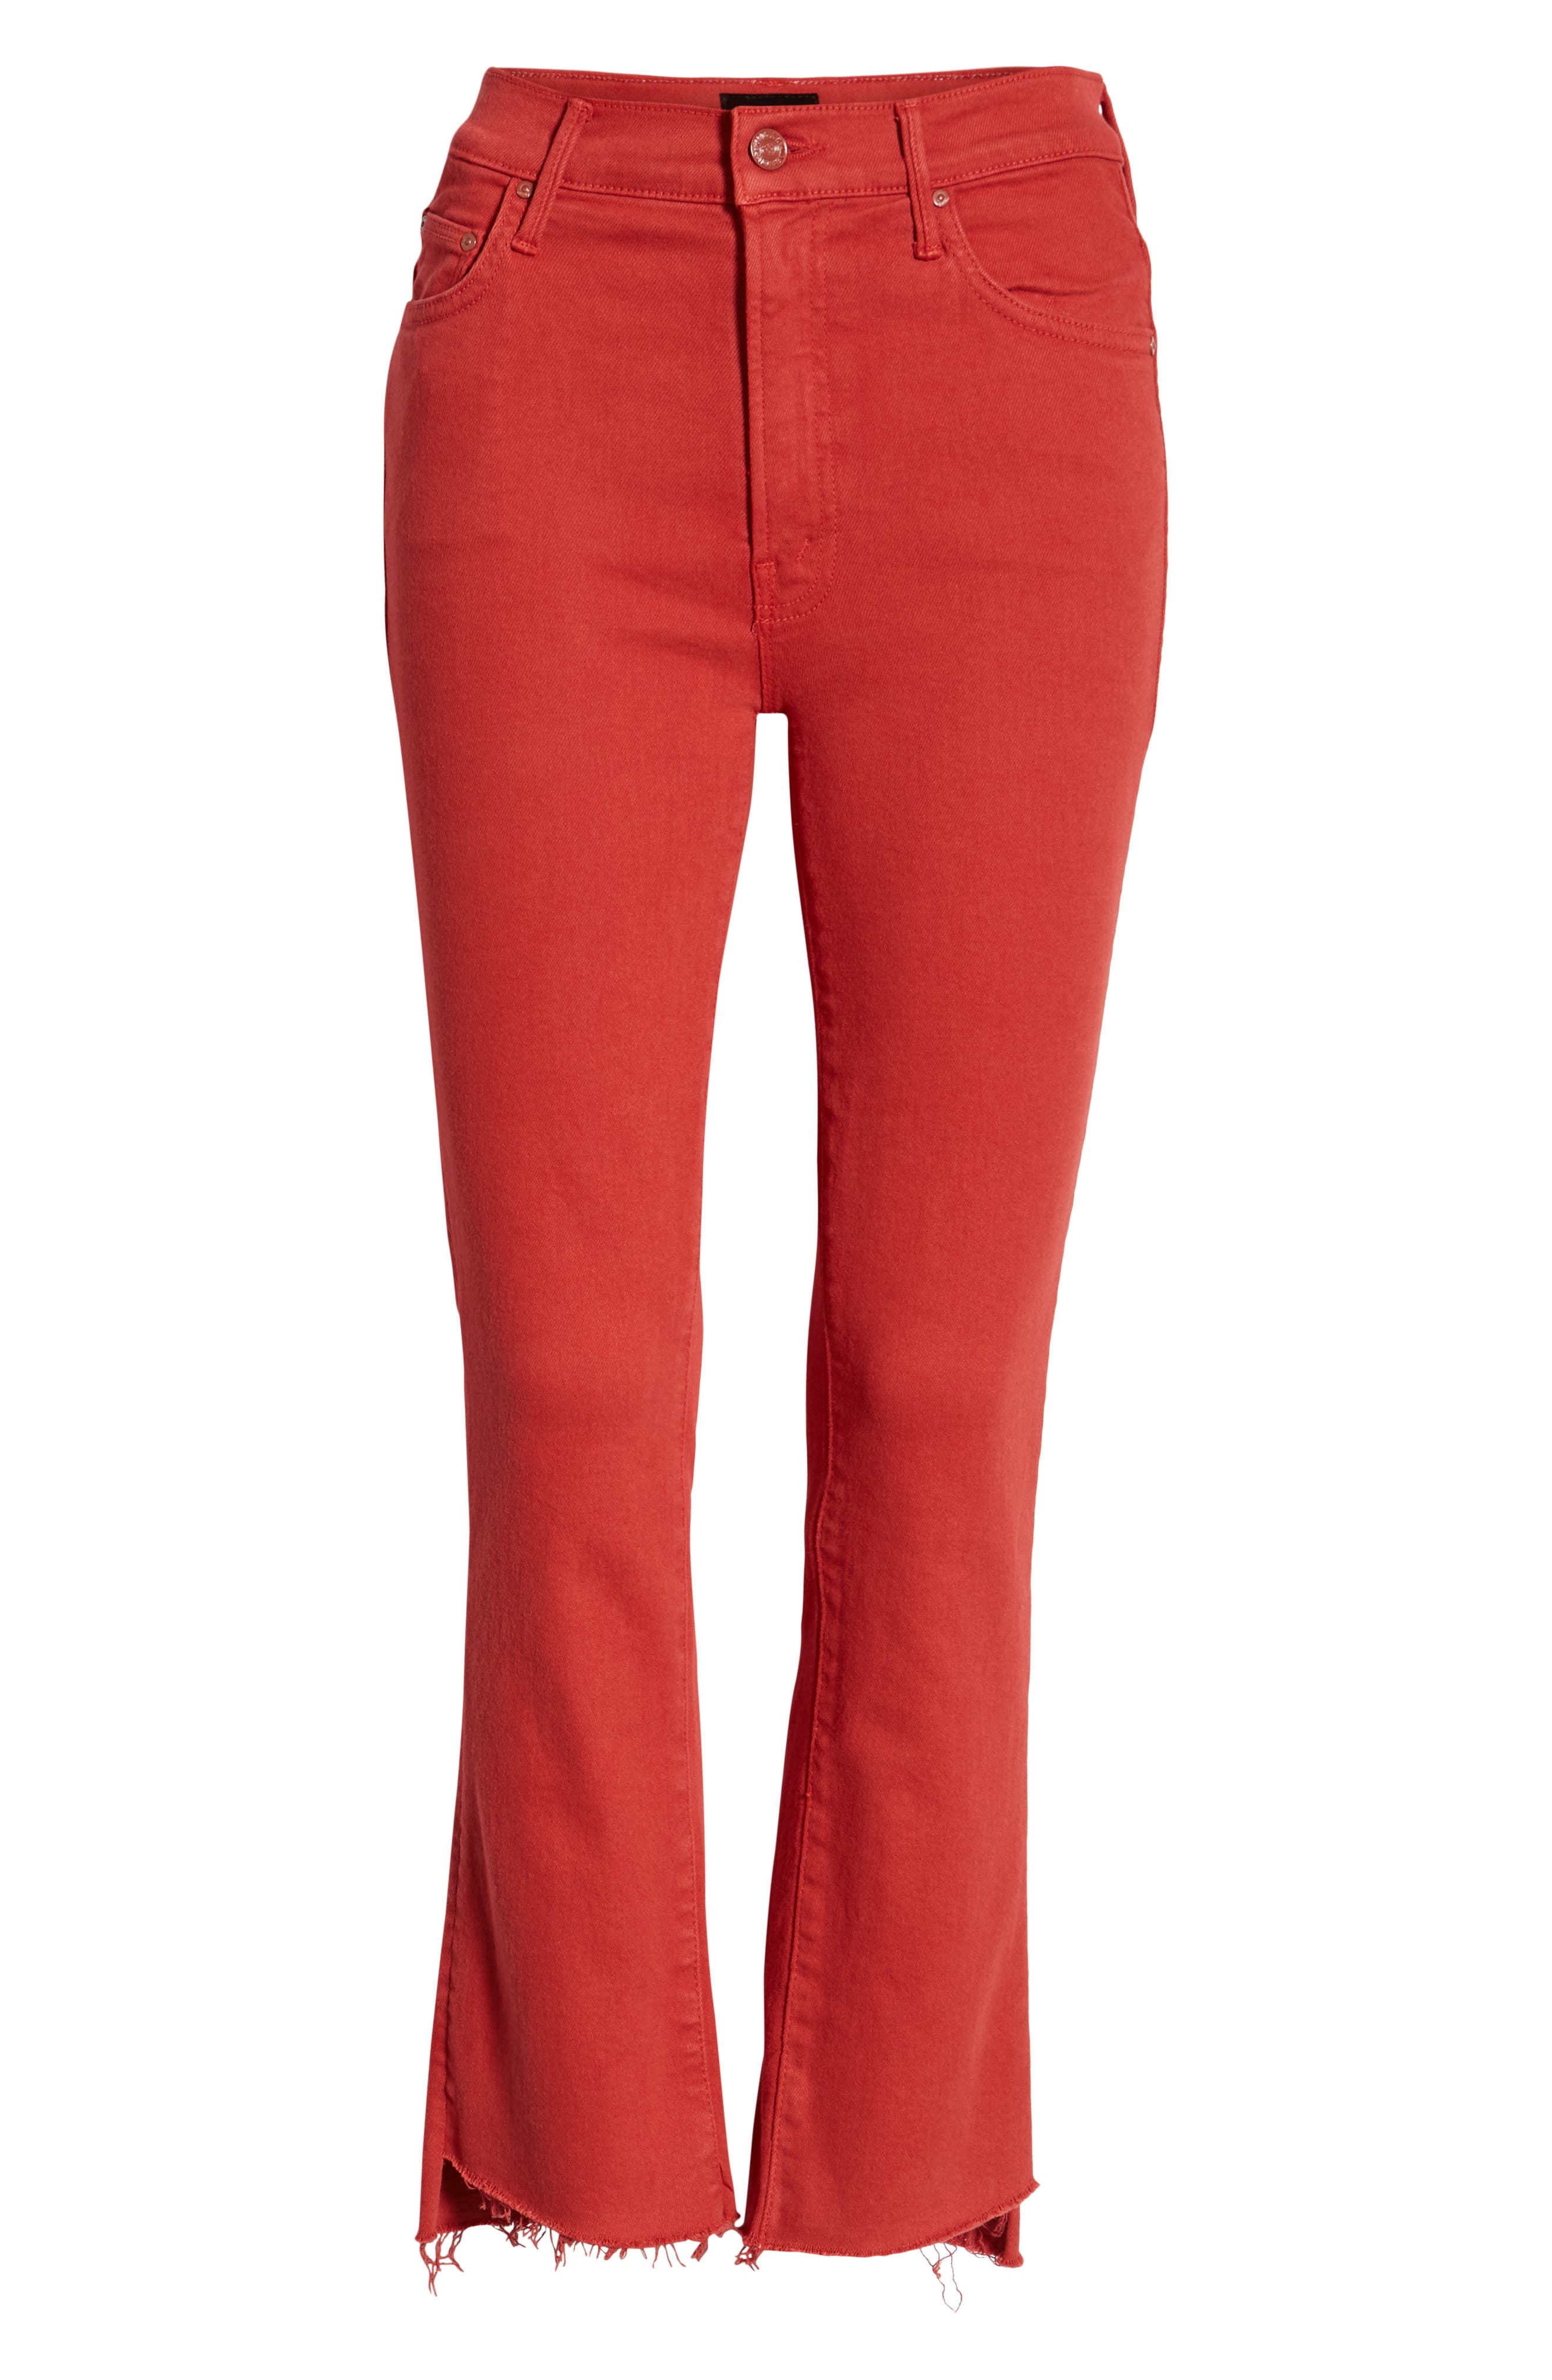 MOTHER, The Insider Step Hem Crop Jeans, Alternate thumbnail 7, color, HOT ROD RED